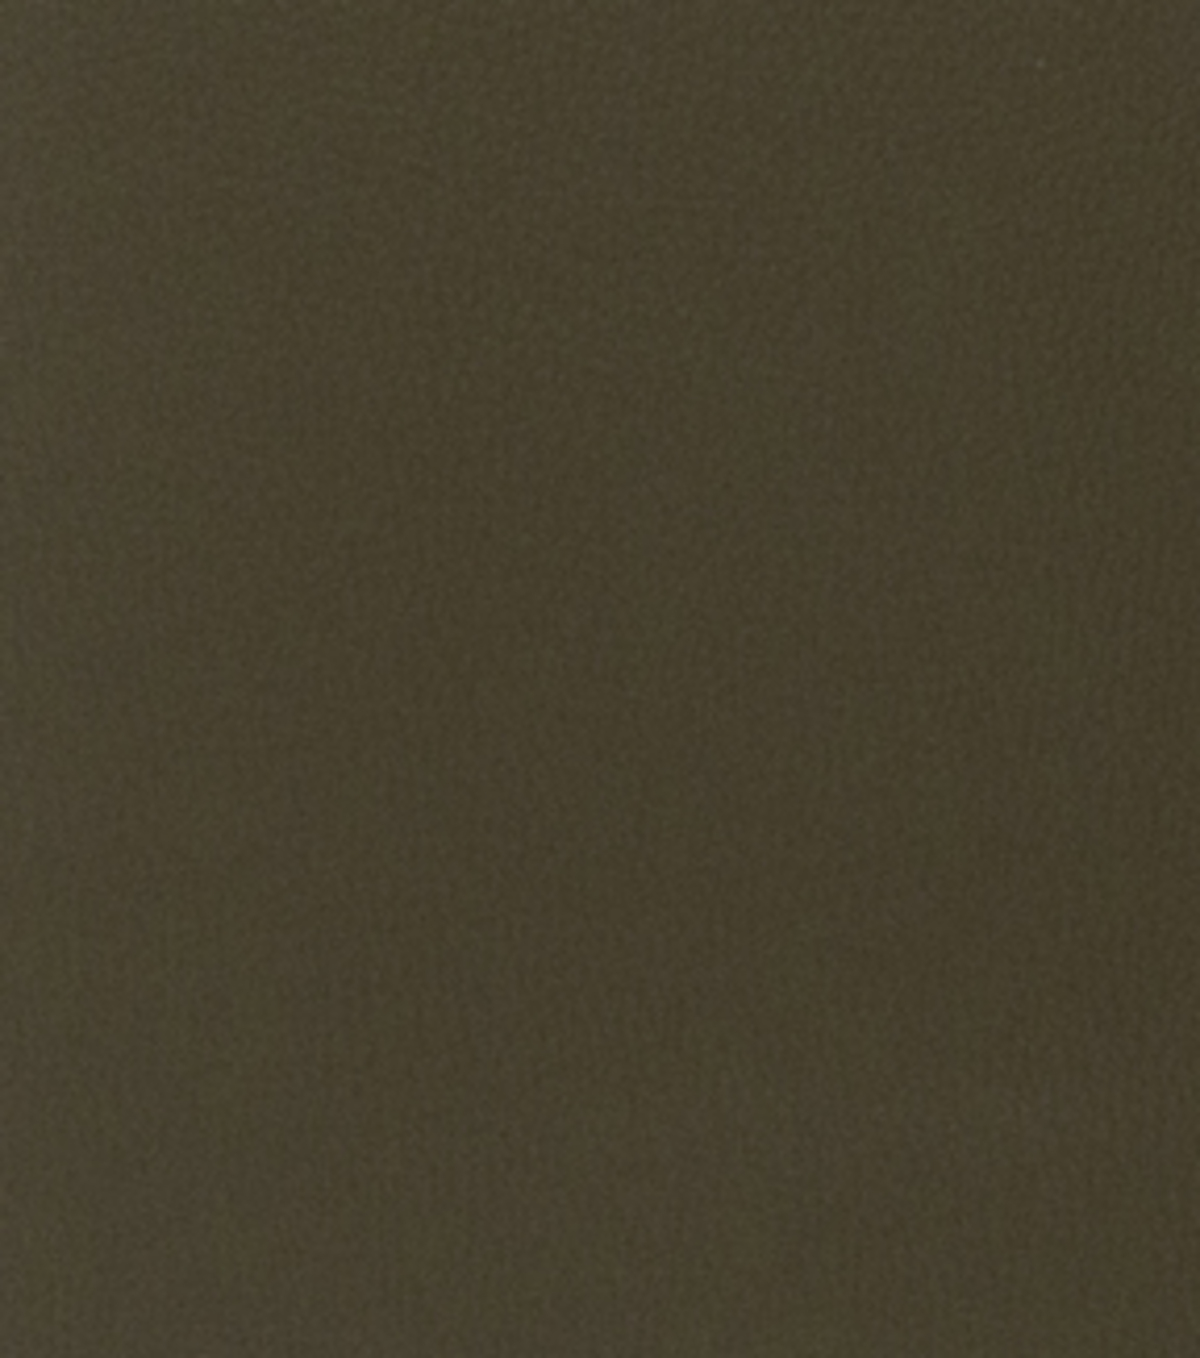 Home Decor 8\u0022x8\u0022 Fabric Swatch-Signature Series Boyd Camouflage